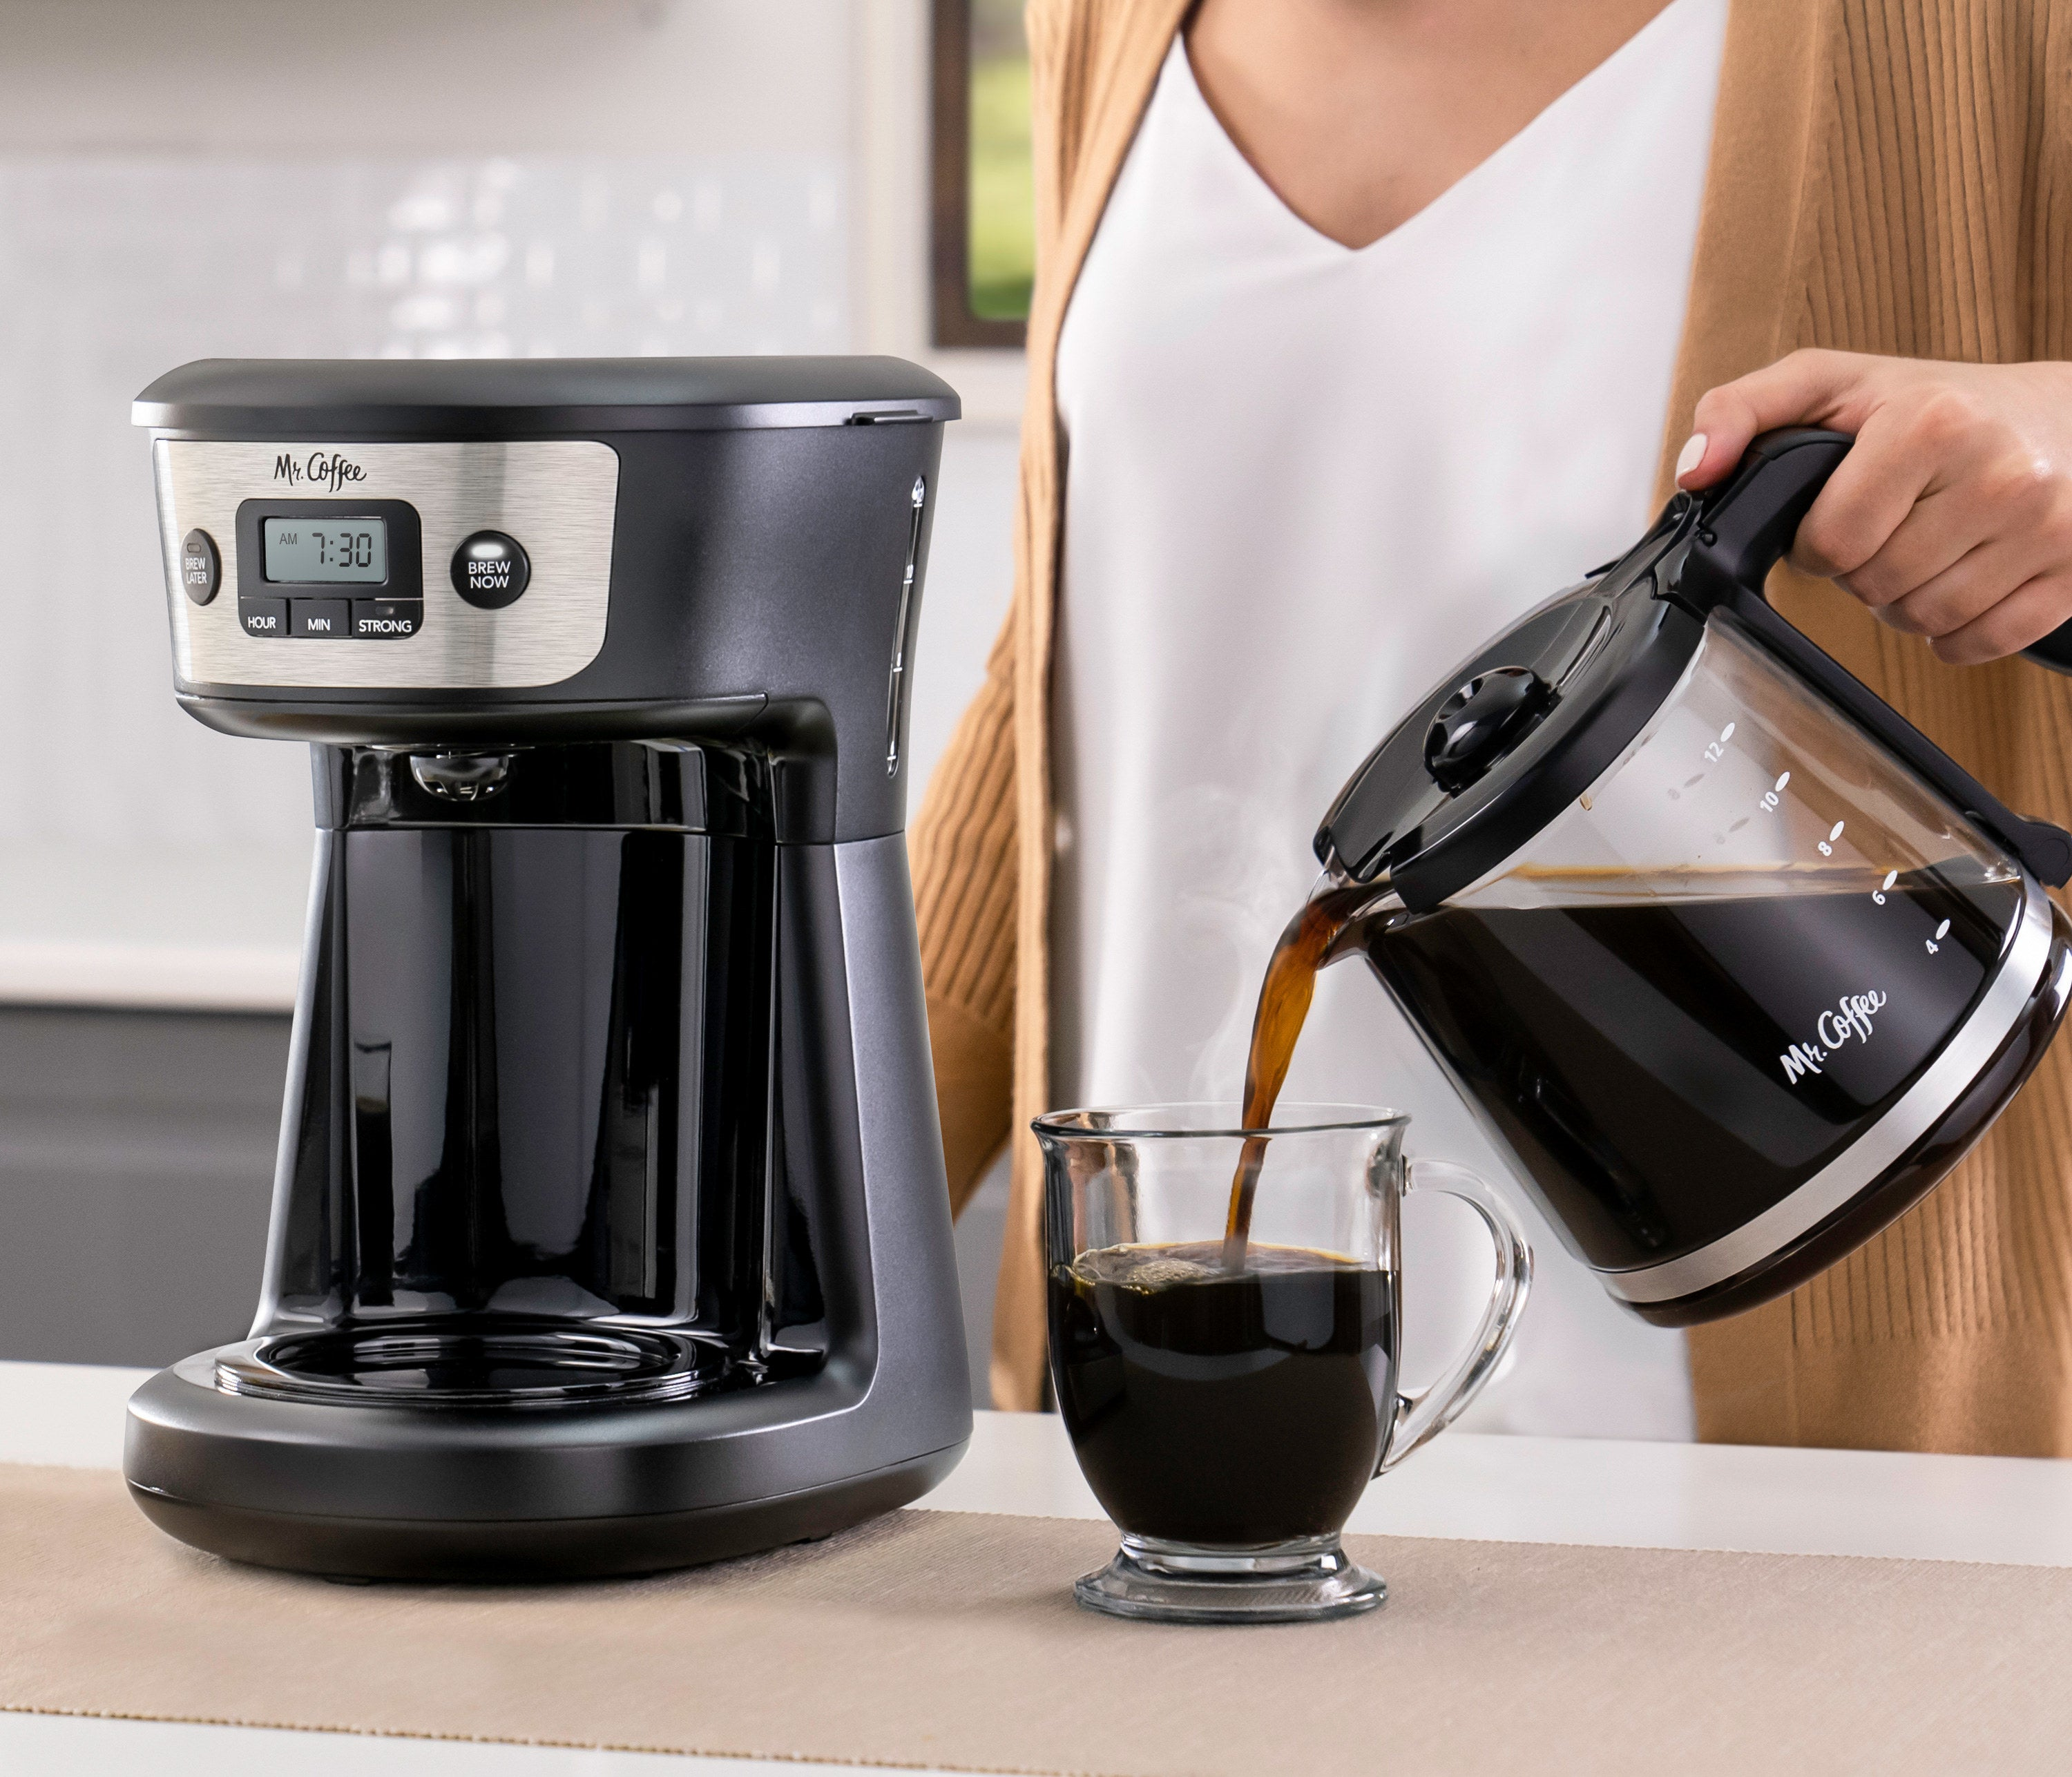 Model pouring coffee from black coffee machine